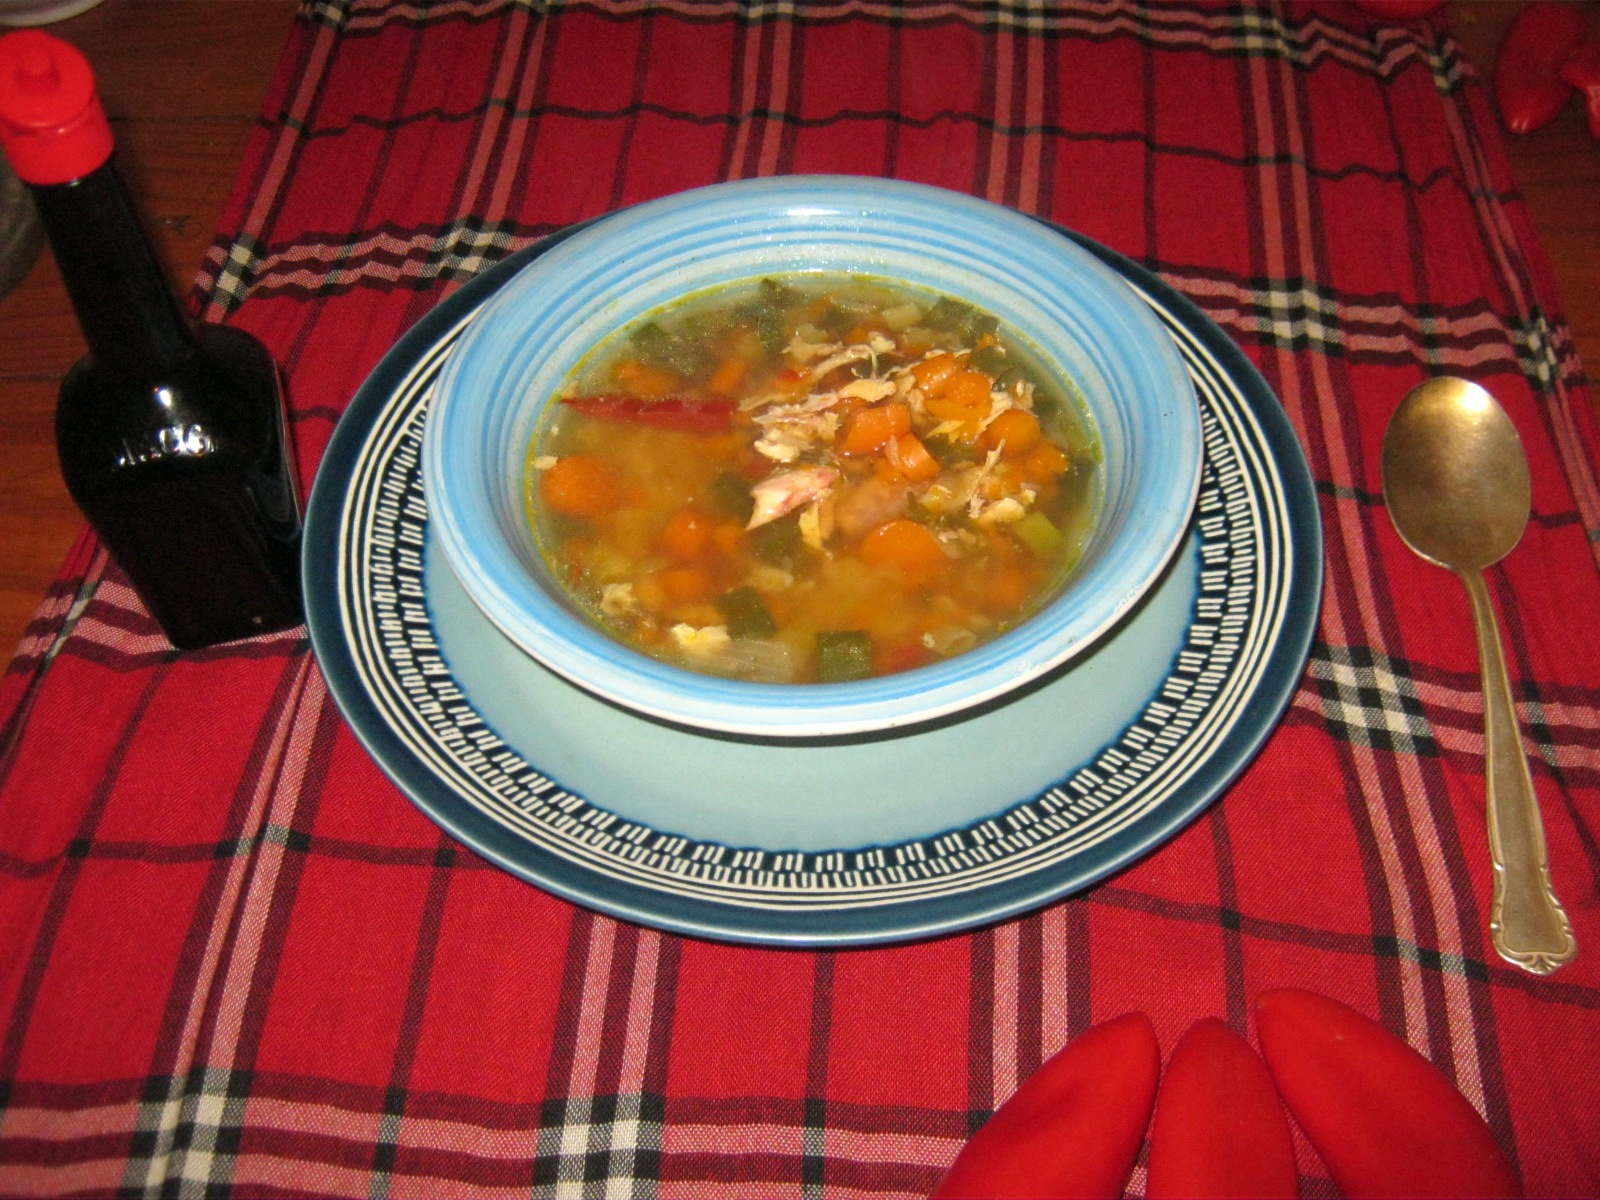 Spicy and tasty chicken soup recipe from Germany with veggies and fresh herbs